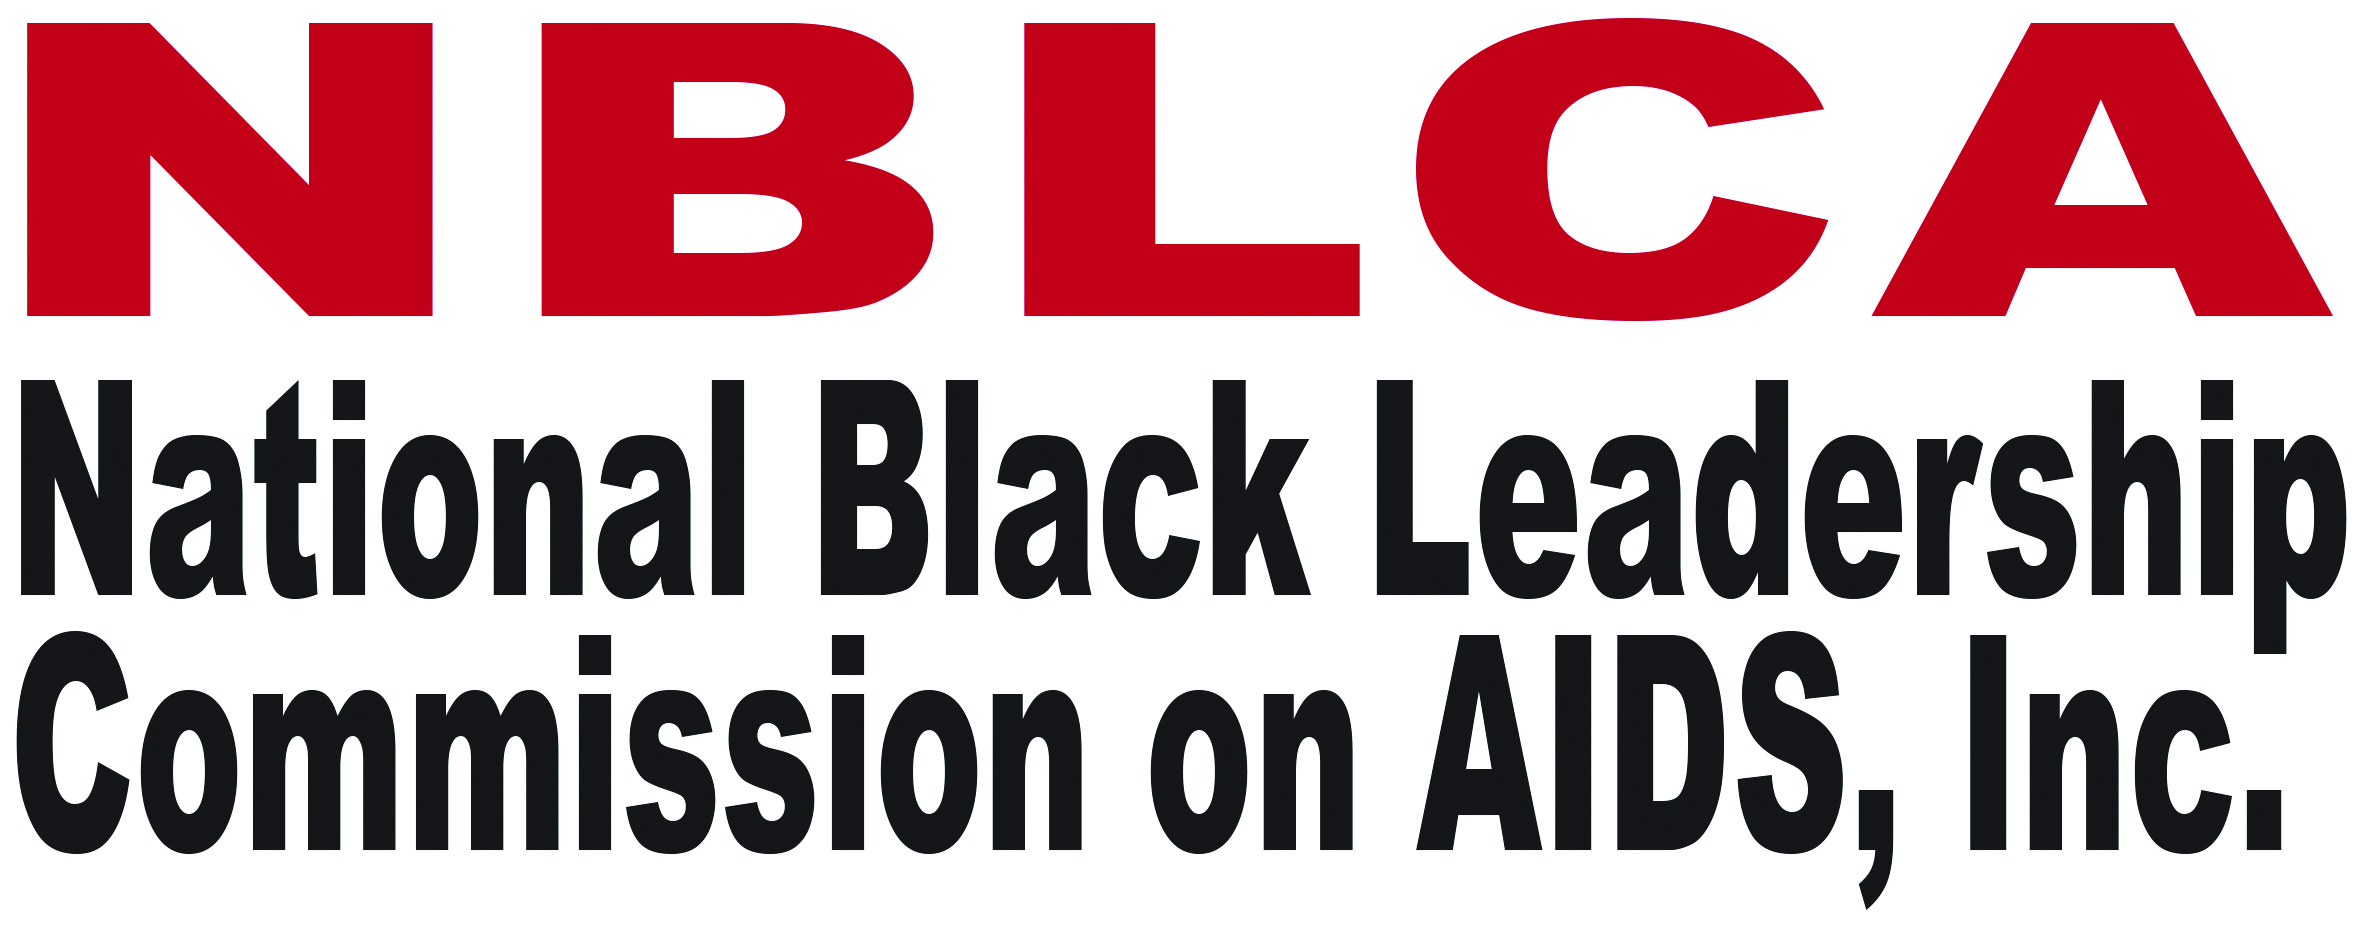 National Black Leadership Commission on AIDS